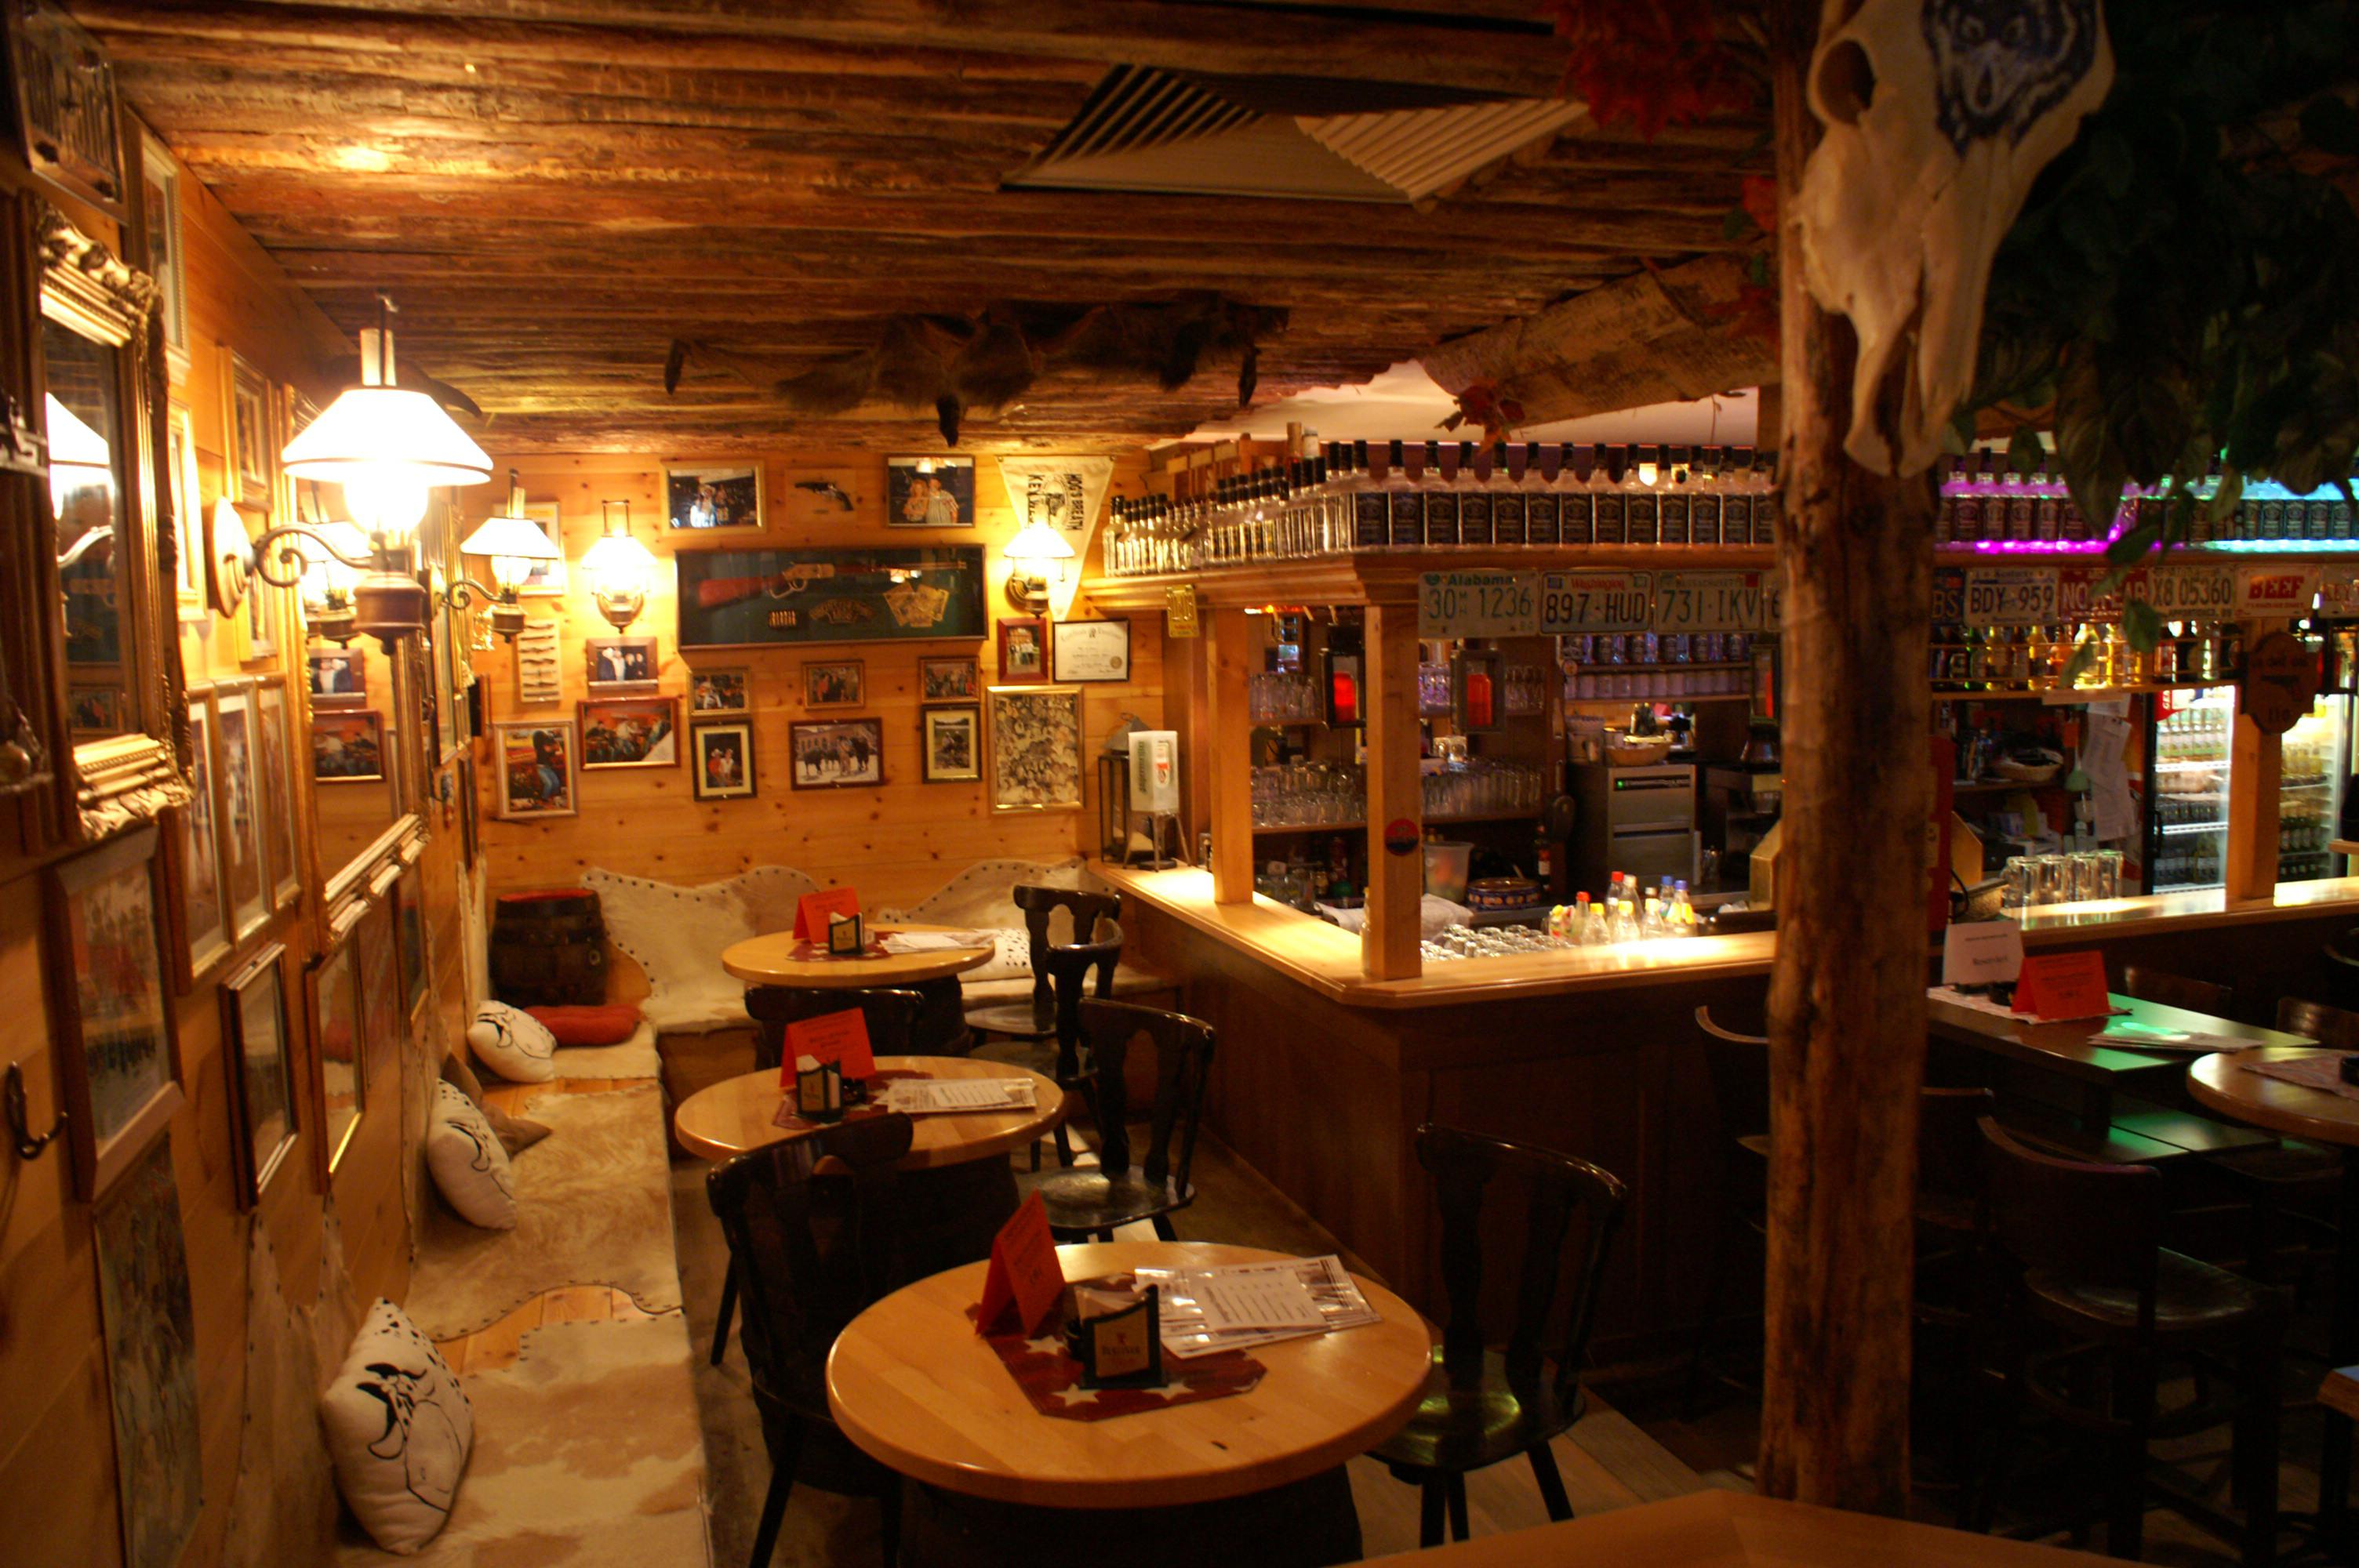 Zimmer Küche Bad Bar Heidelberg Image Description